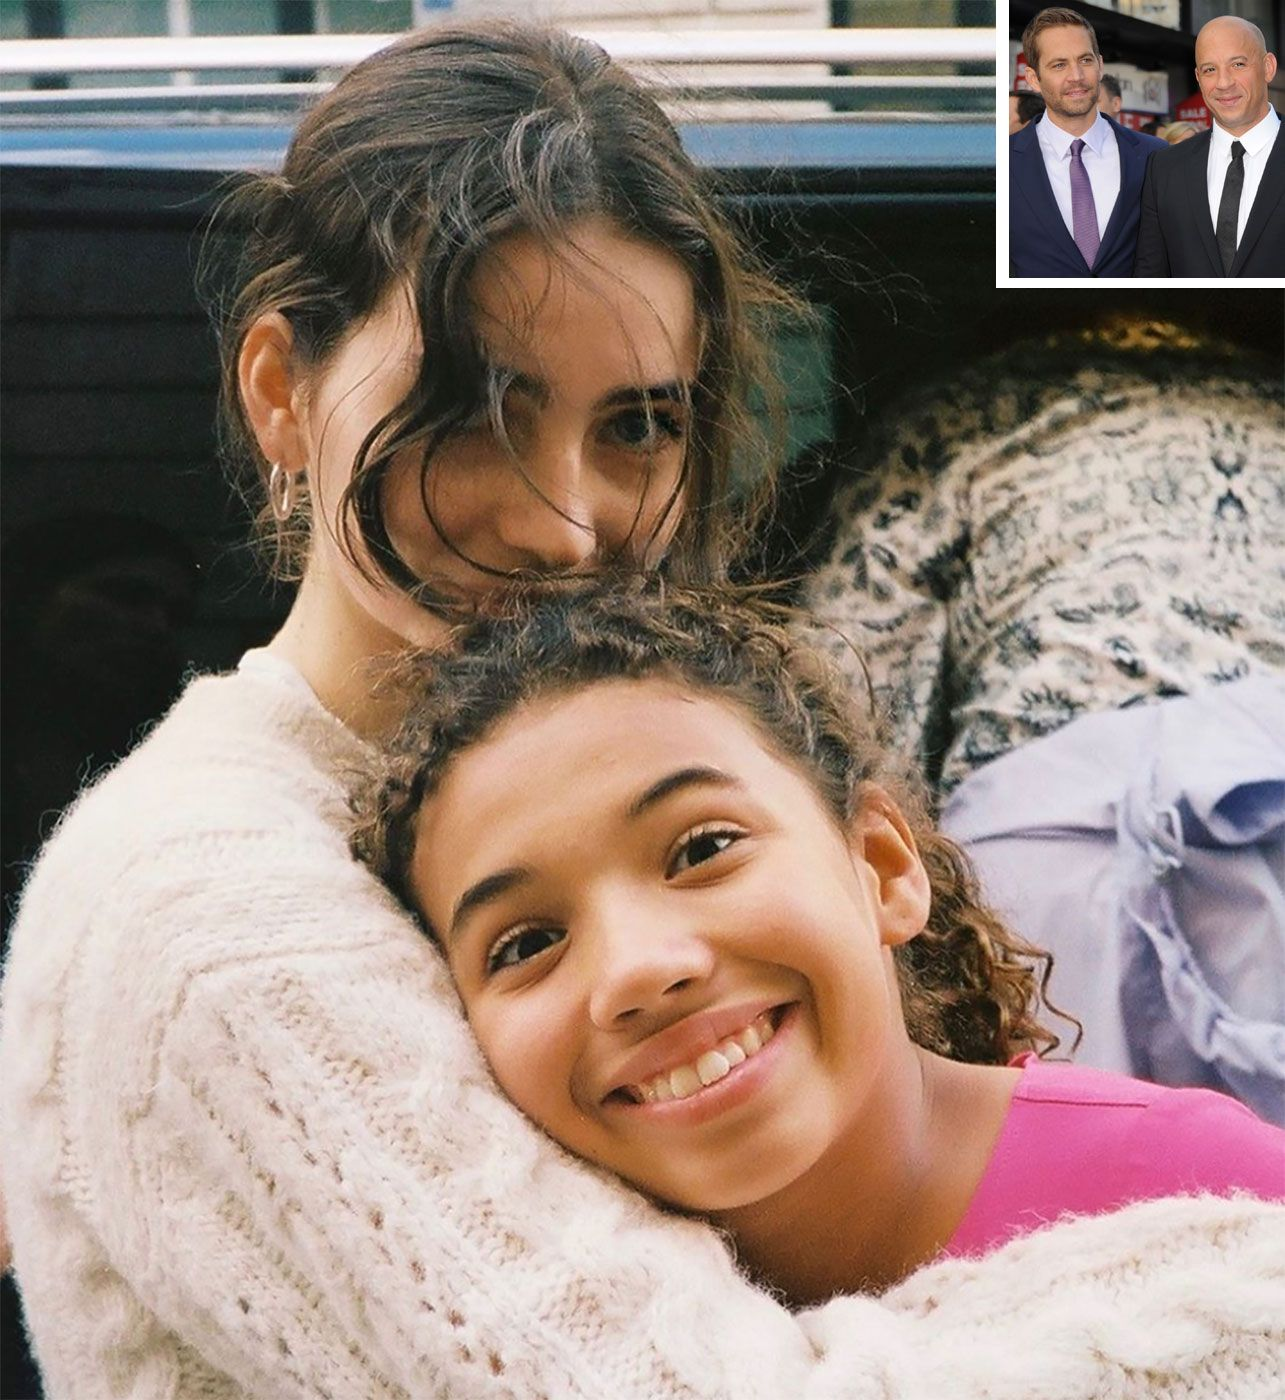 Paul Walker And Vin Diesel S Daughters Pose Together In Heartwarming Photo With My Angel Paul Walker Daughter Meadow Walker Paul Walker